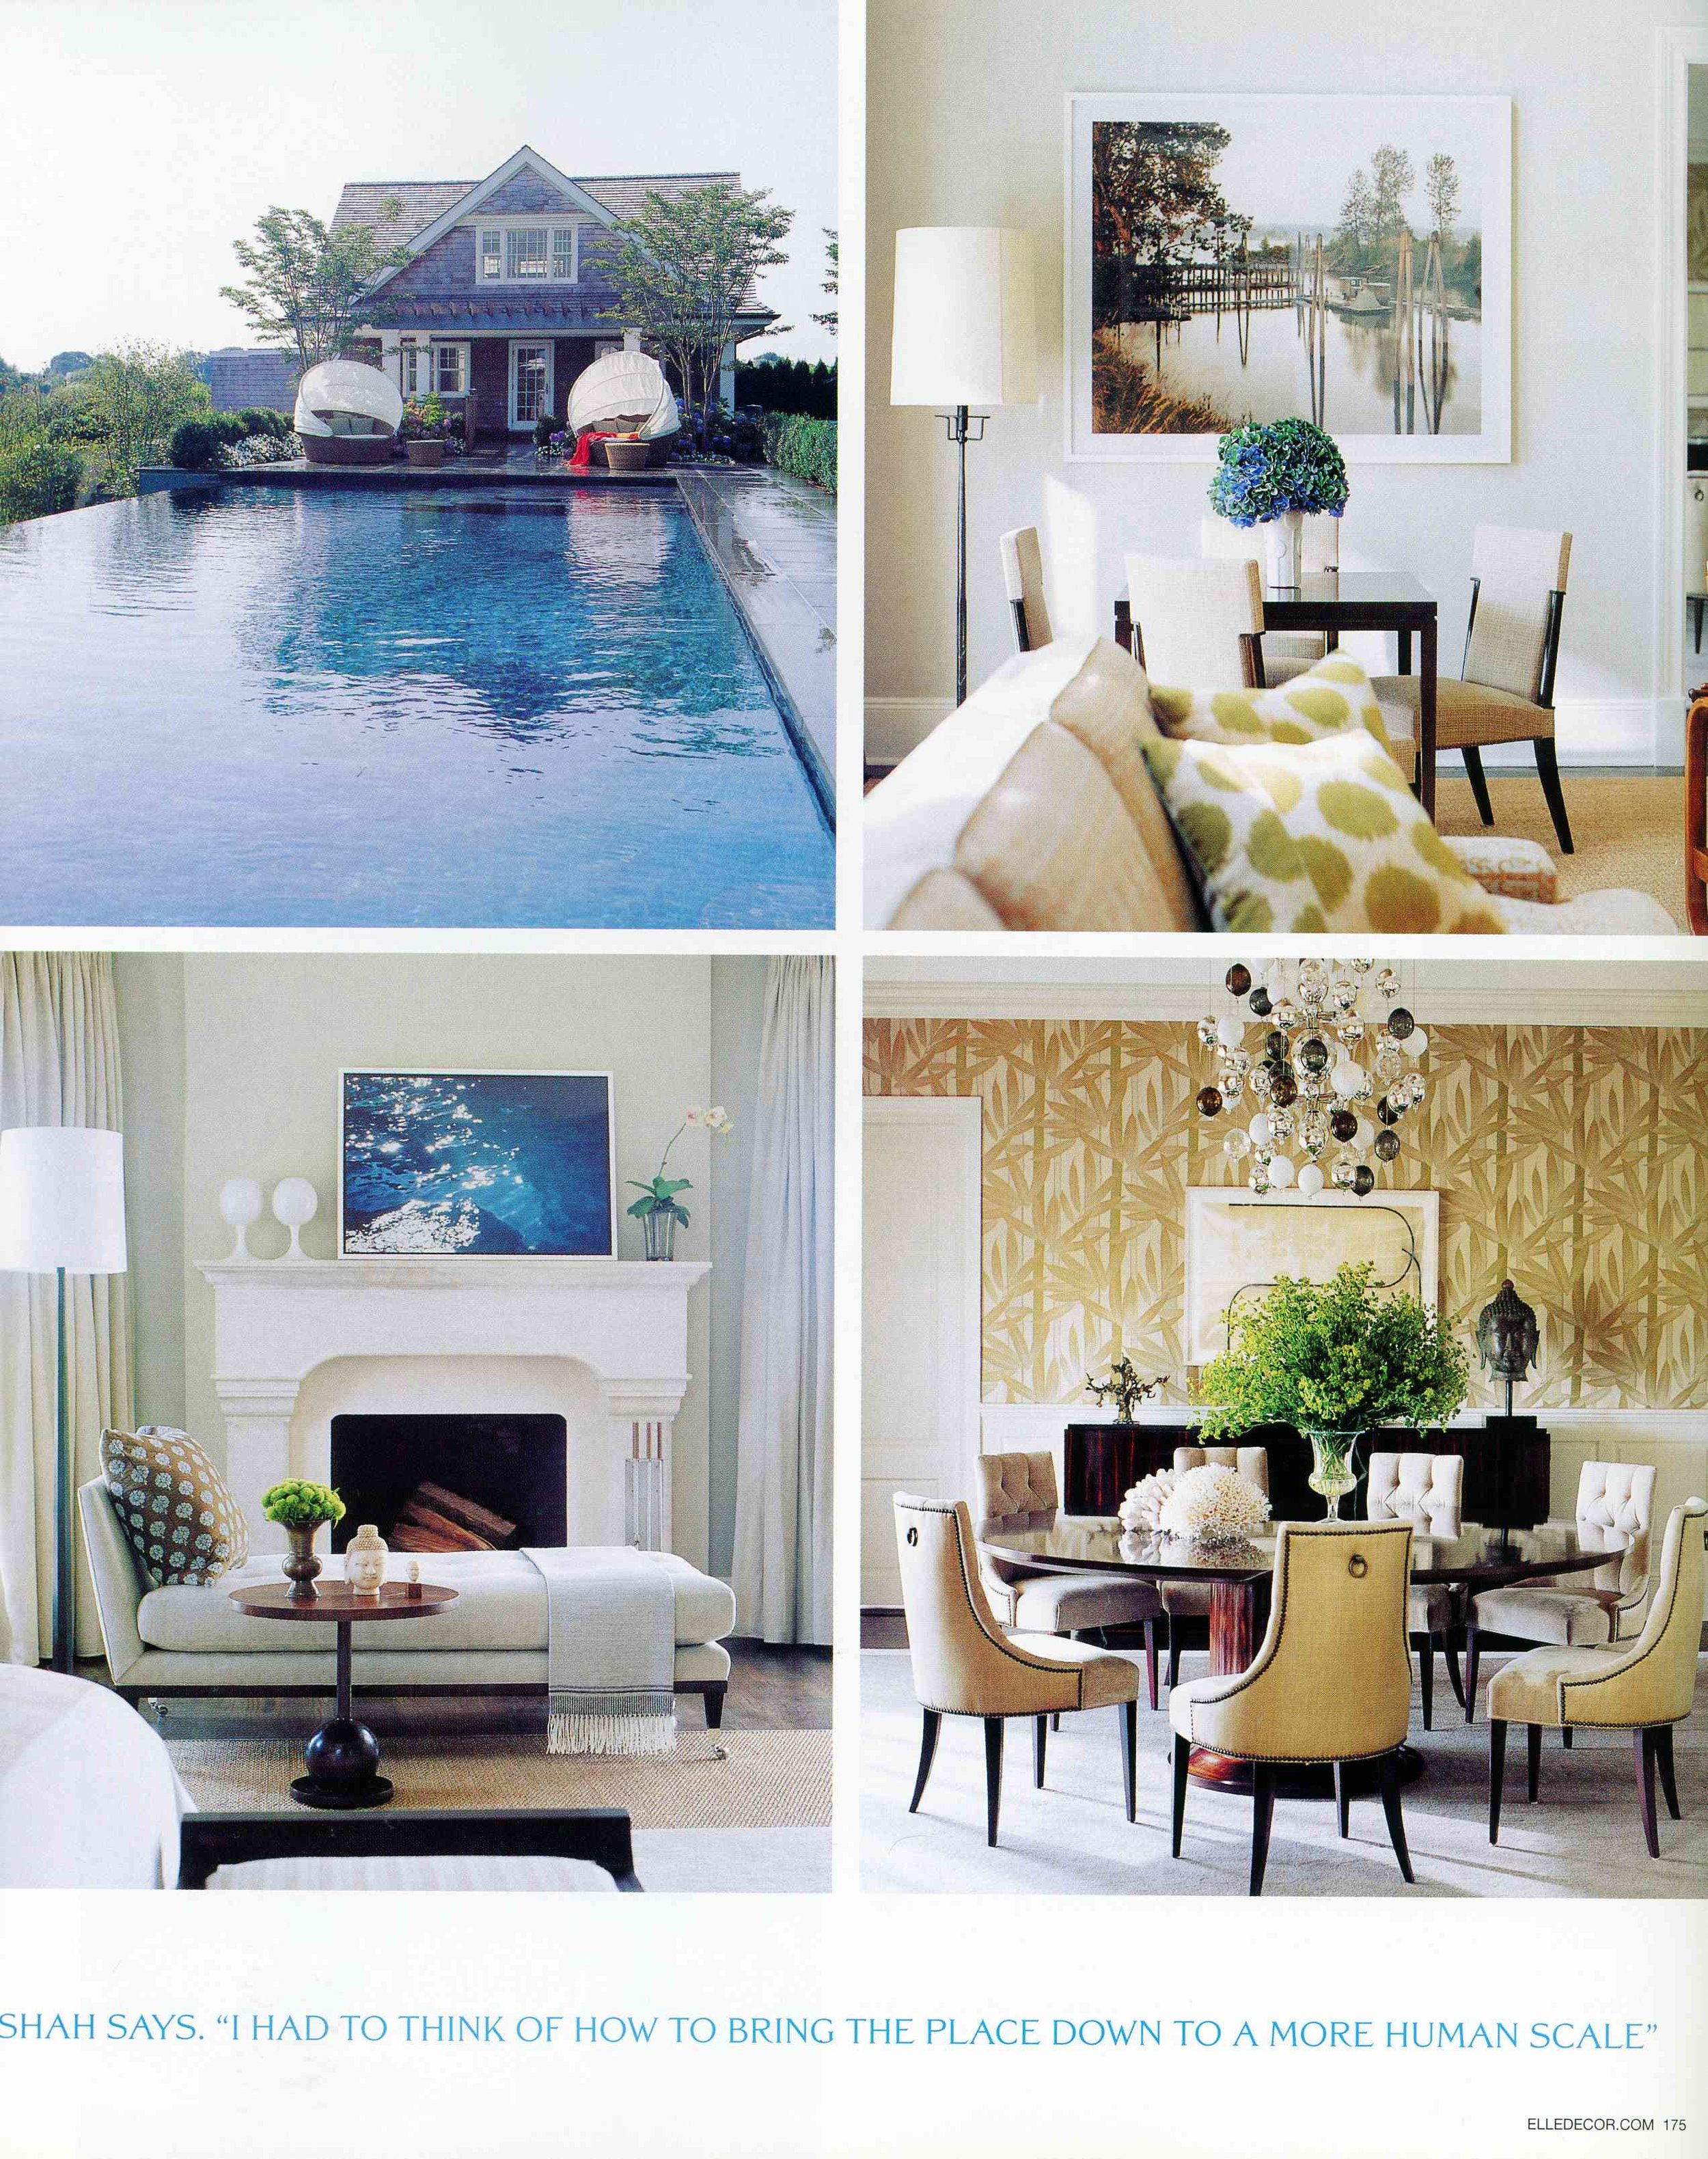 Elle Decor_Jul-Aug 07_ Menin Hamptons_Full Article_Page_5.jpg